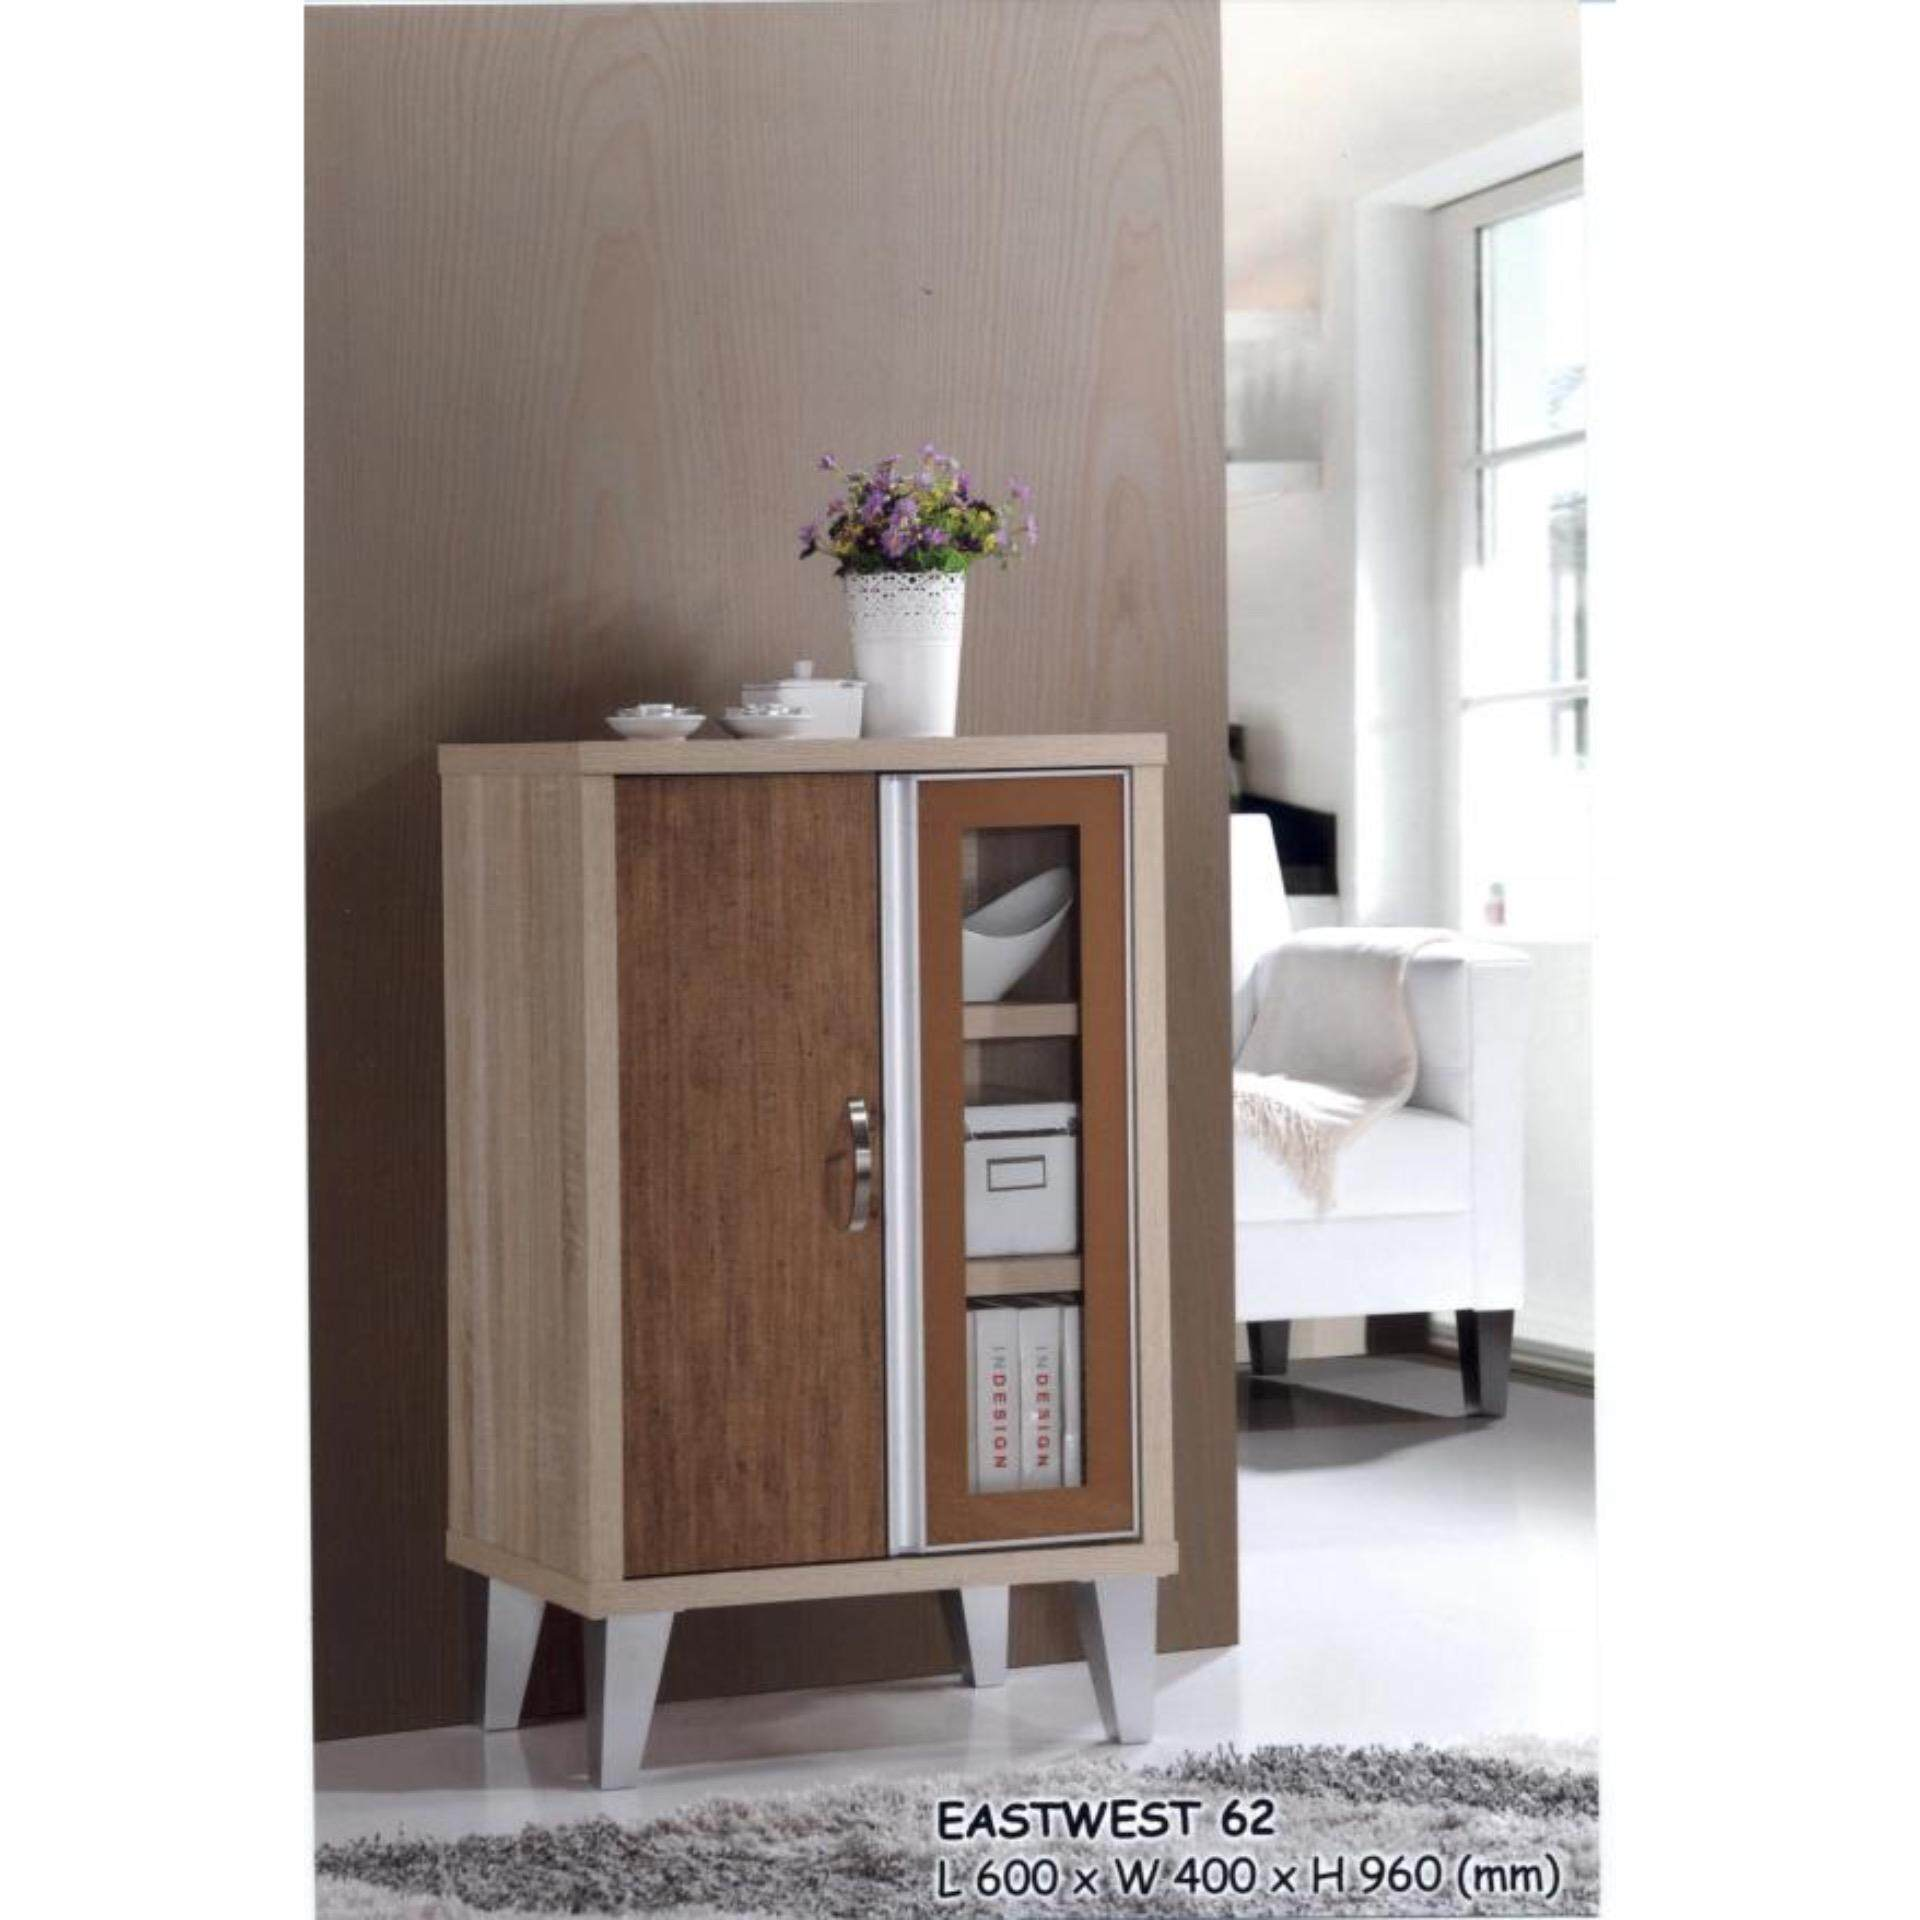 2 Door 2 Feet Solid Multi-Purpose Cabinet Wood